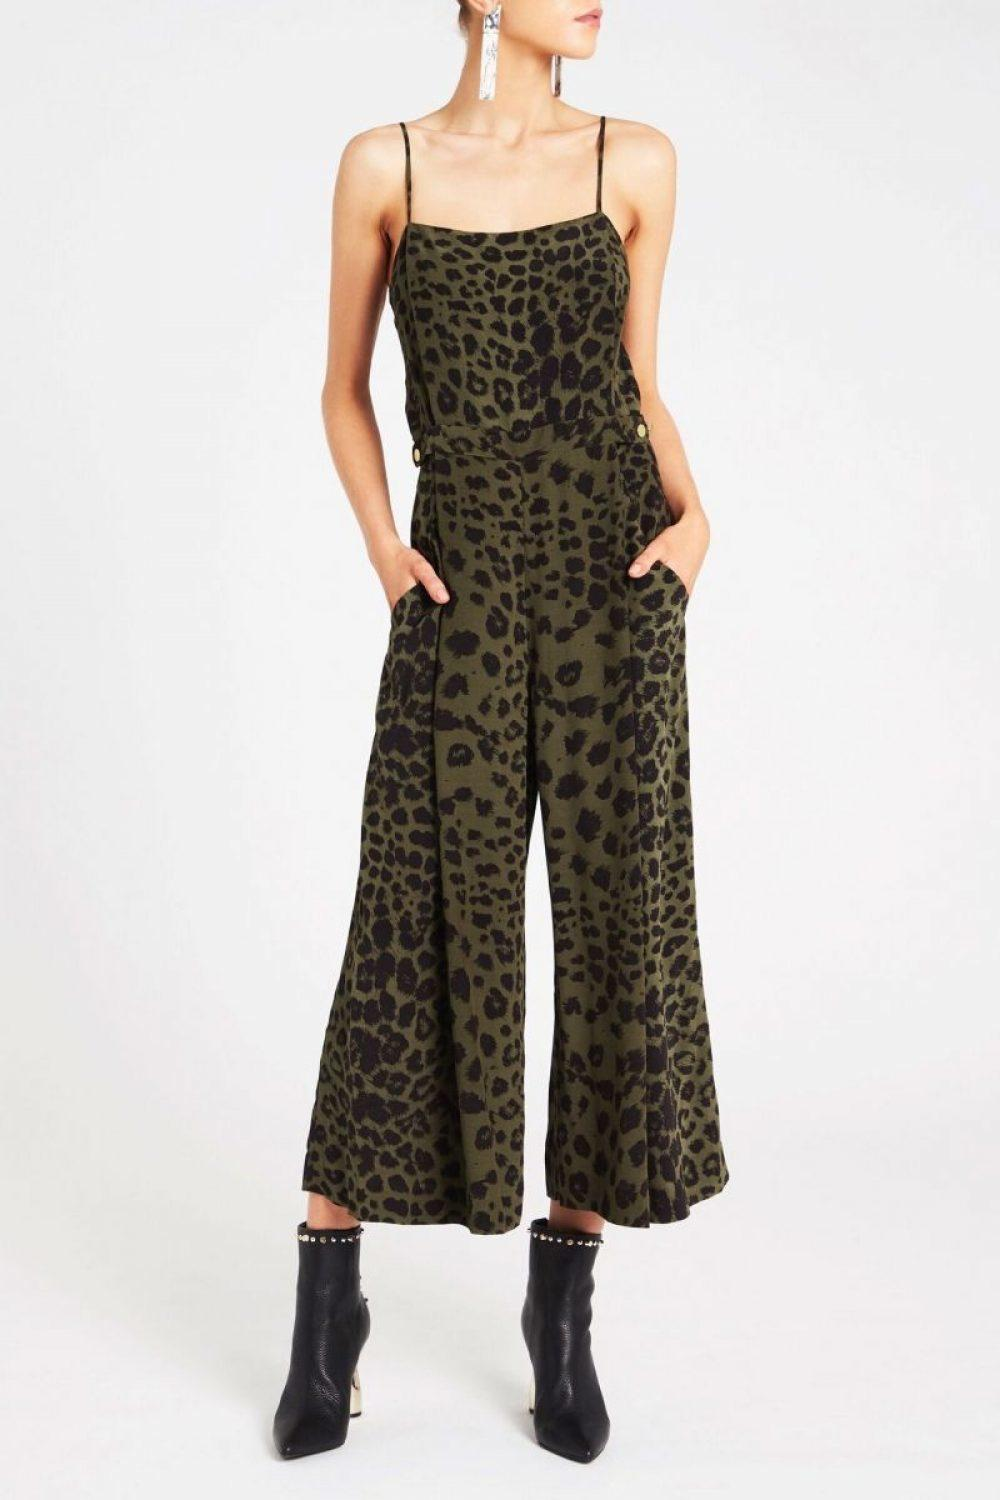 1eb0daf0dd SASS   BIDE  The Cats Meow Jumpsuit  animal print size 8